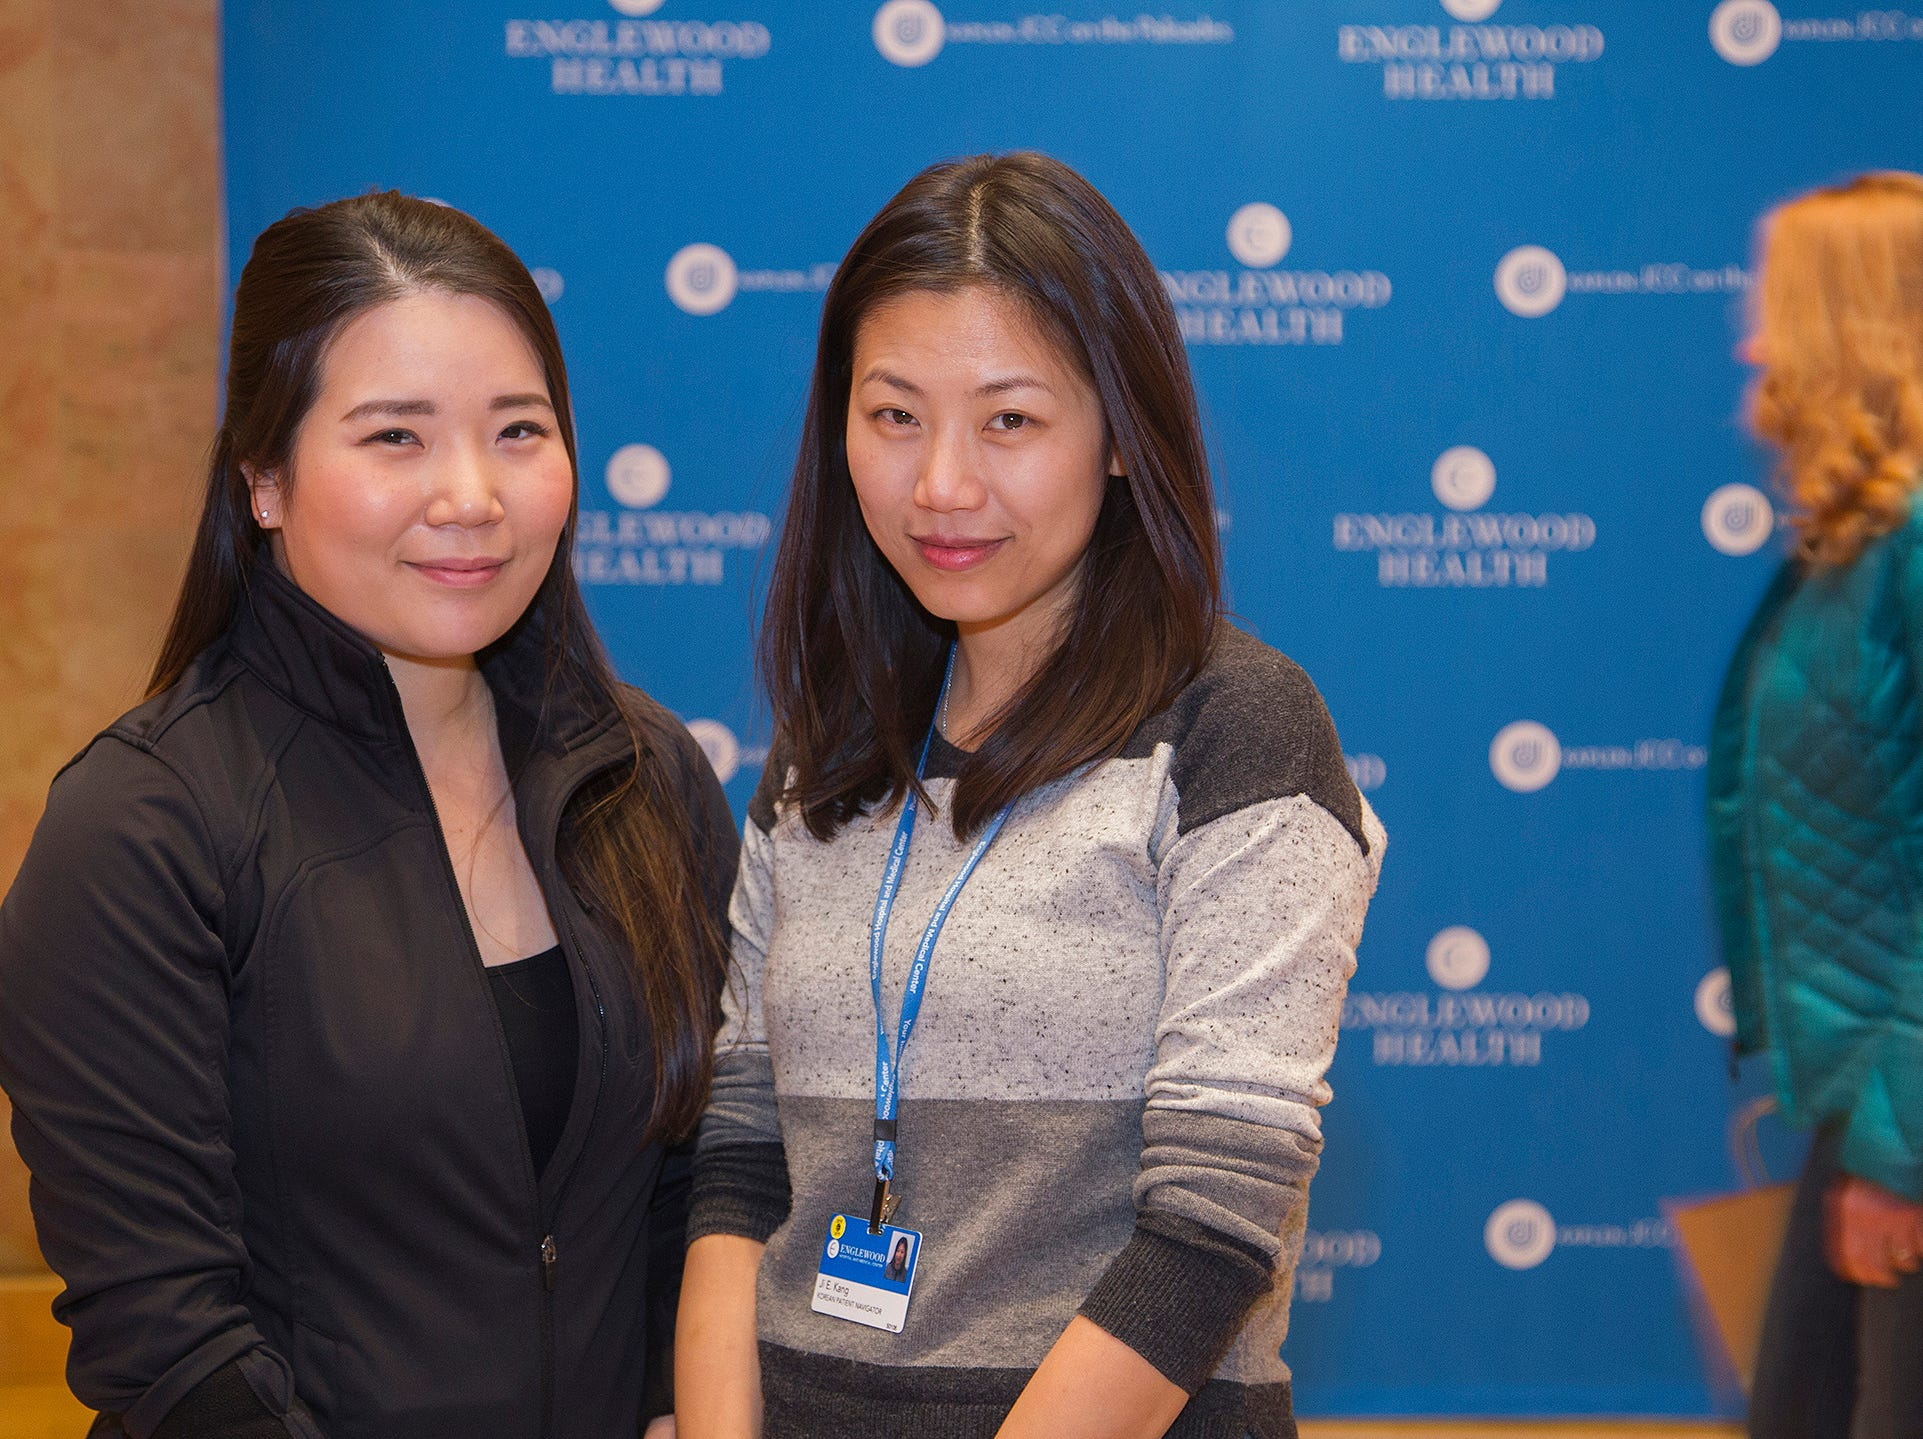 Soo Yun Lee,Jjina Kang. Englewood Health and Kaplen JCC on the Palisades sponsored a Mind, Body, & Sole - a women's health & fitness social night at Kaplen JCC on the Palisades in Tenafly.02/13/2019